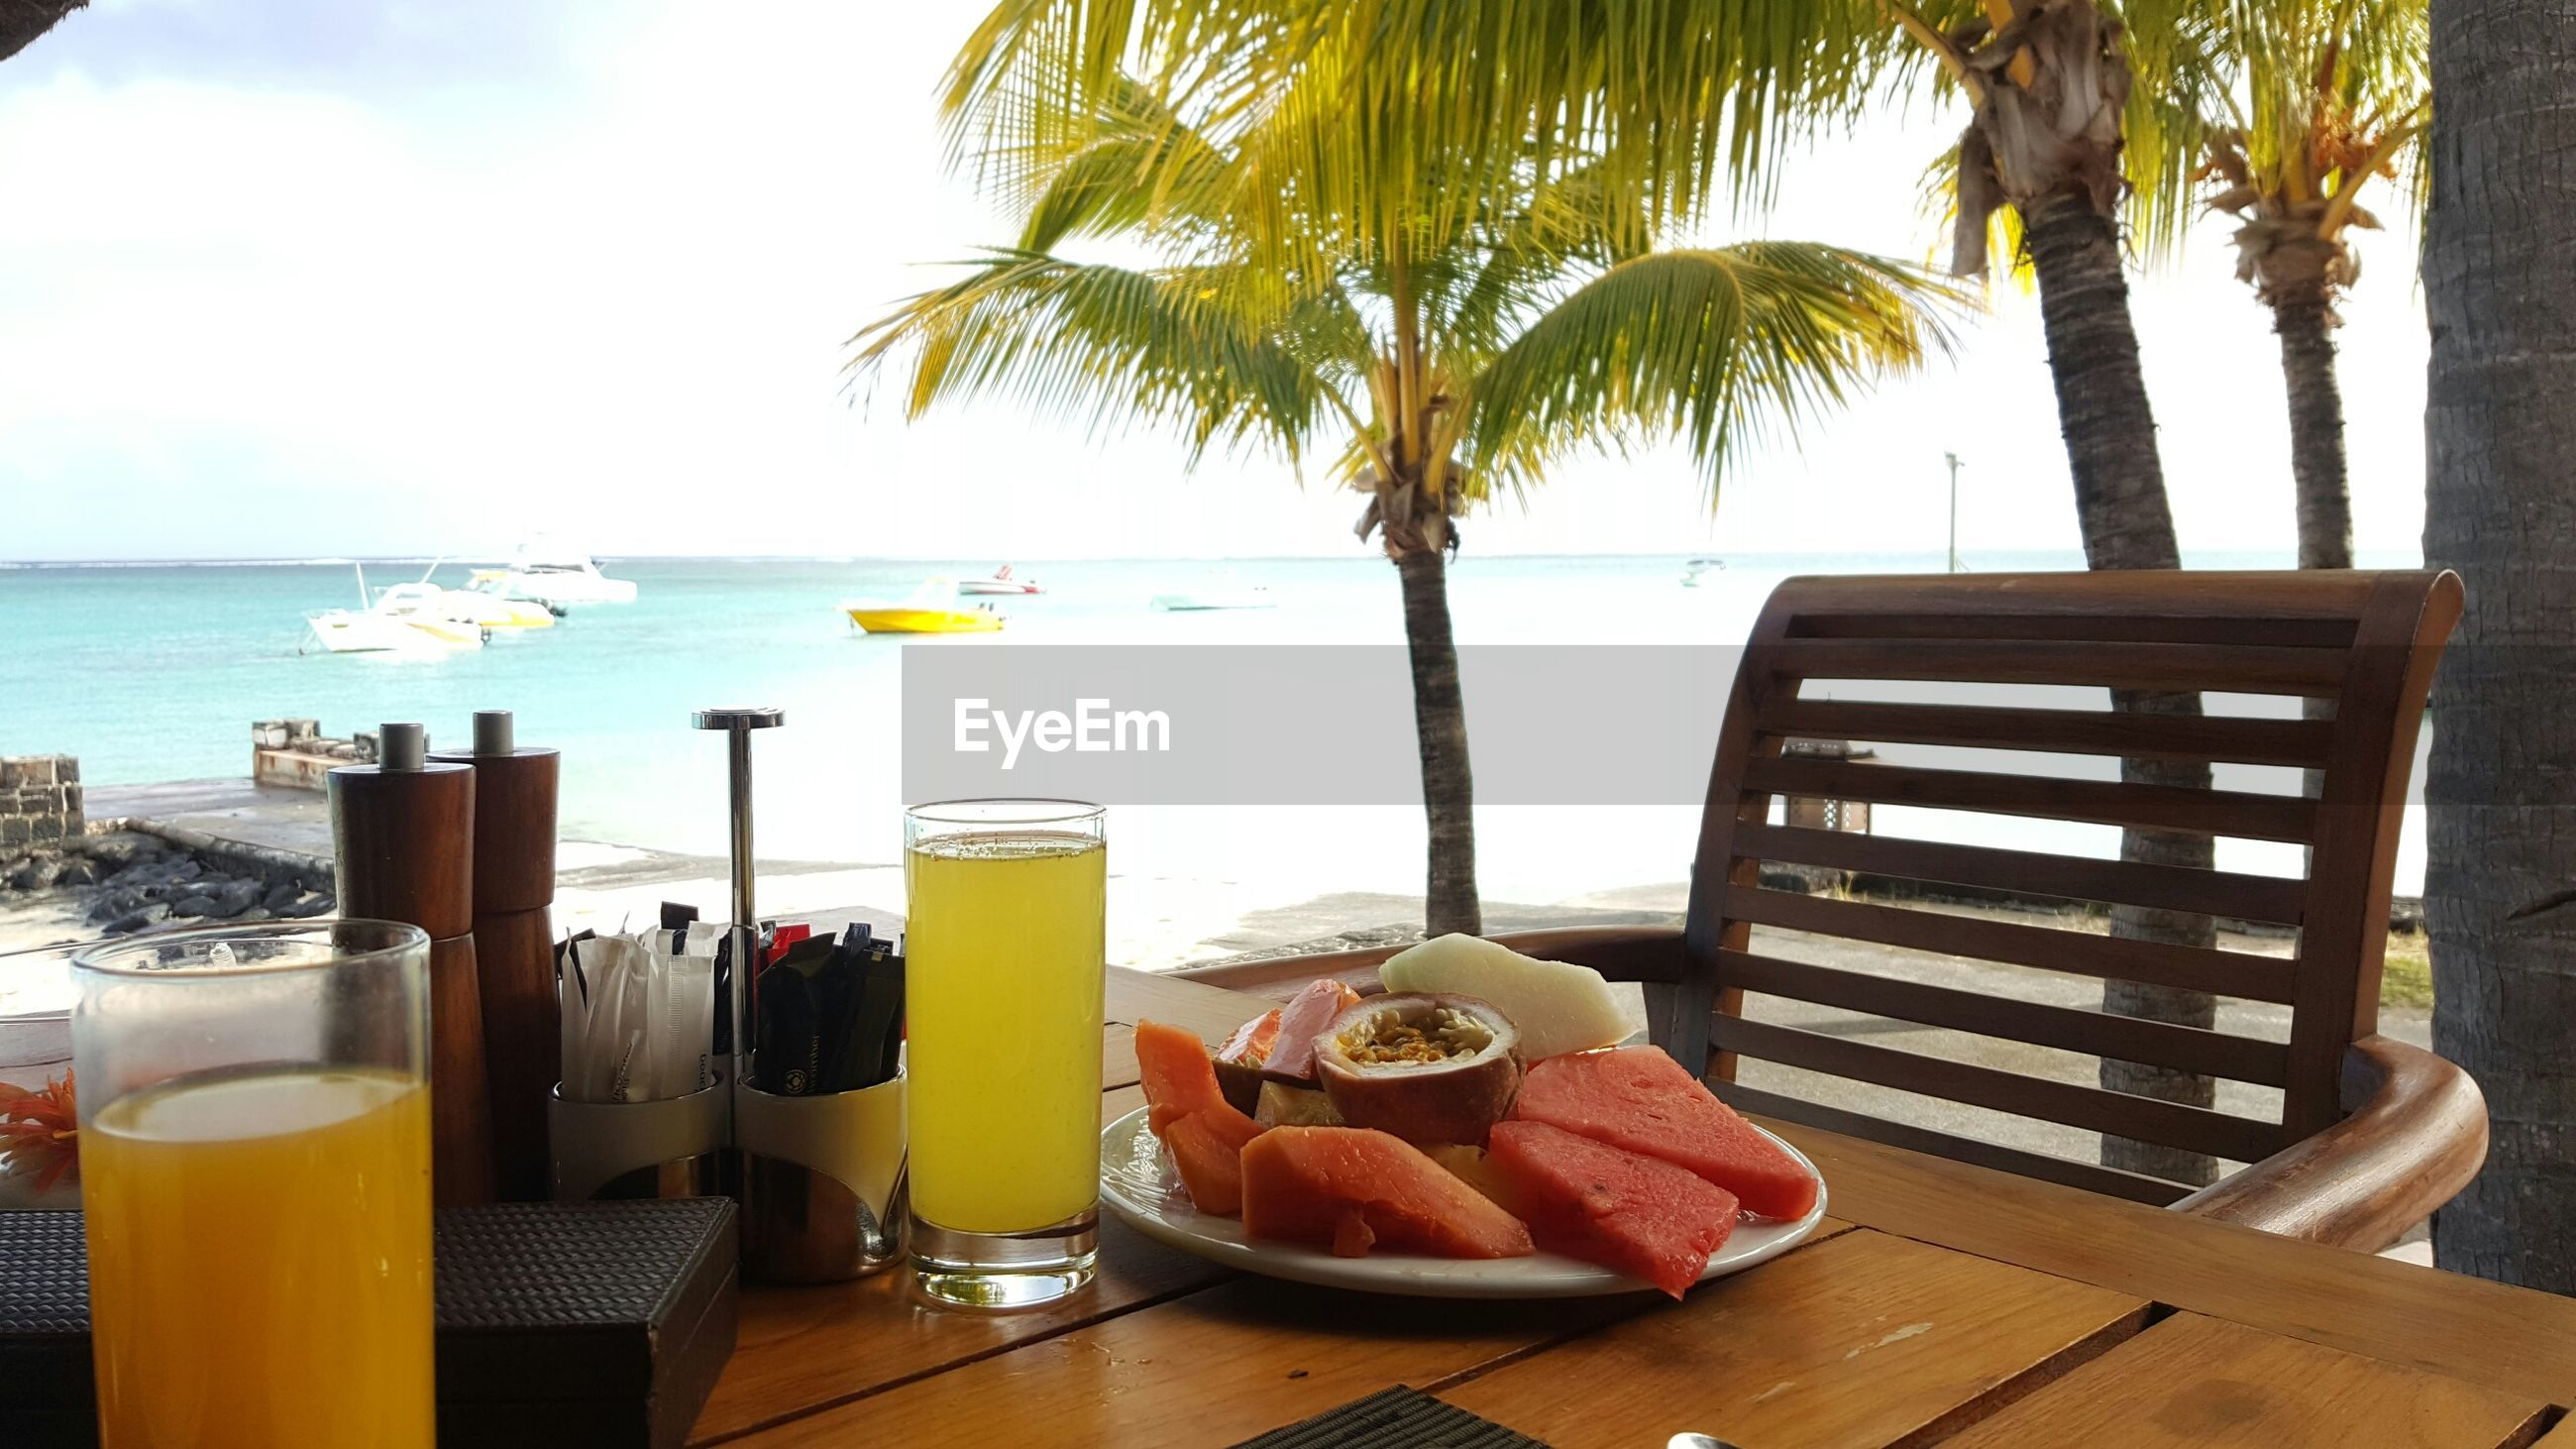 Fruits and juices served on table at beach restaurant